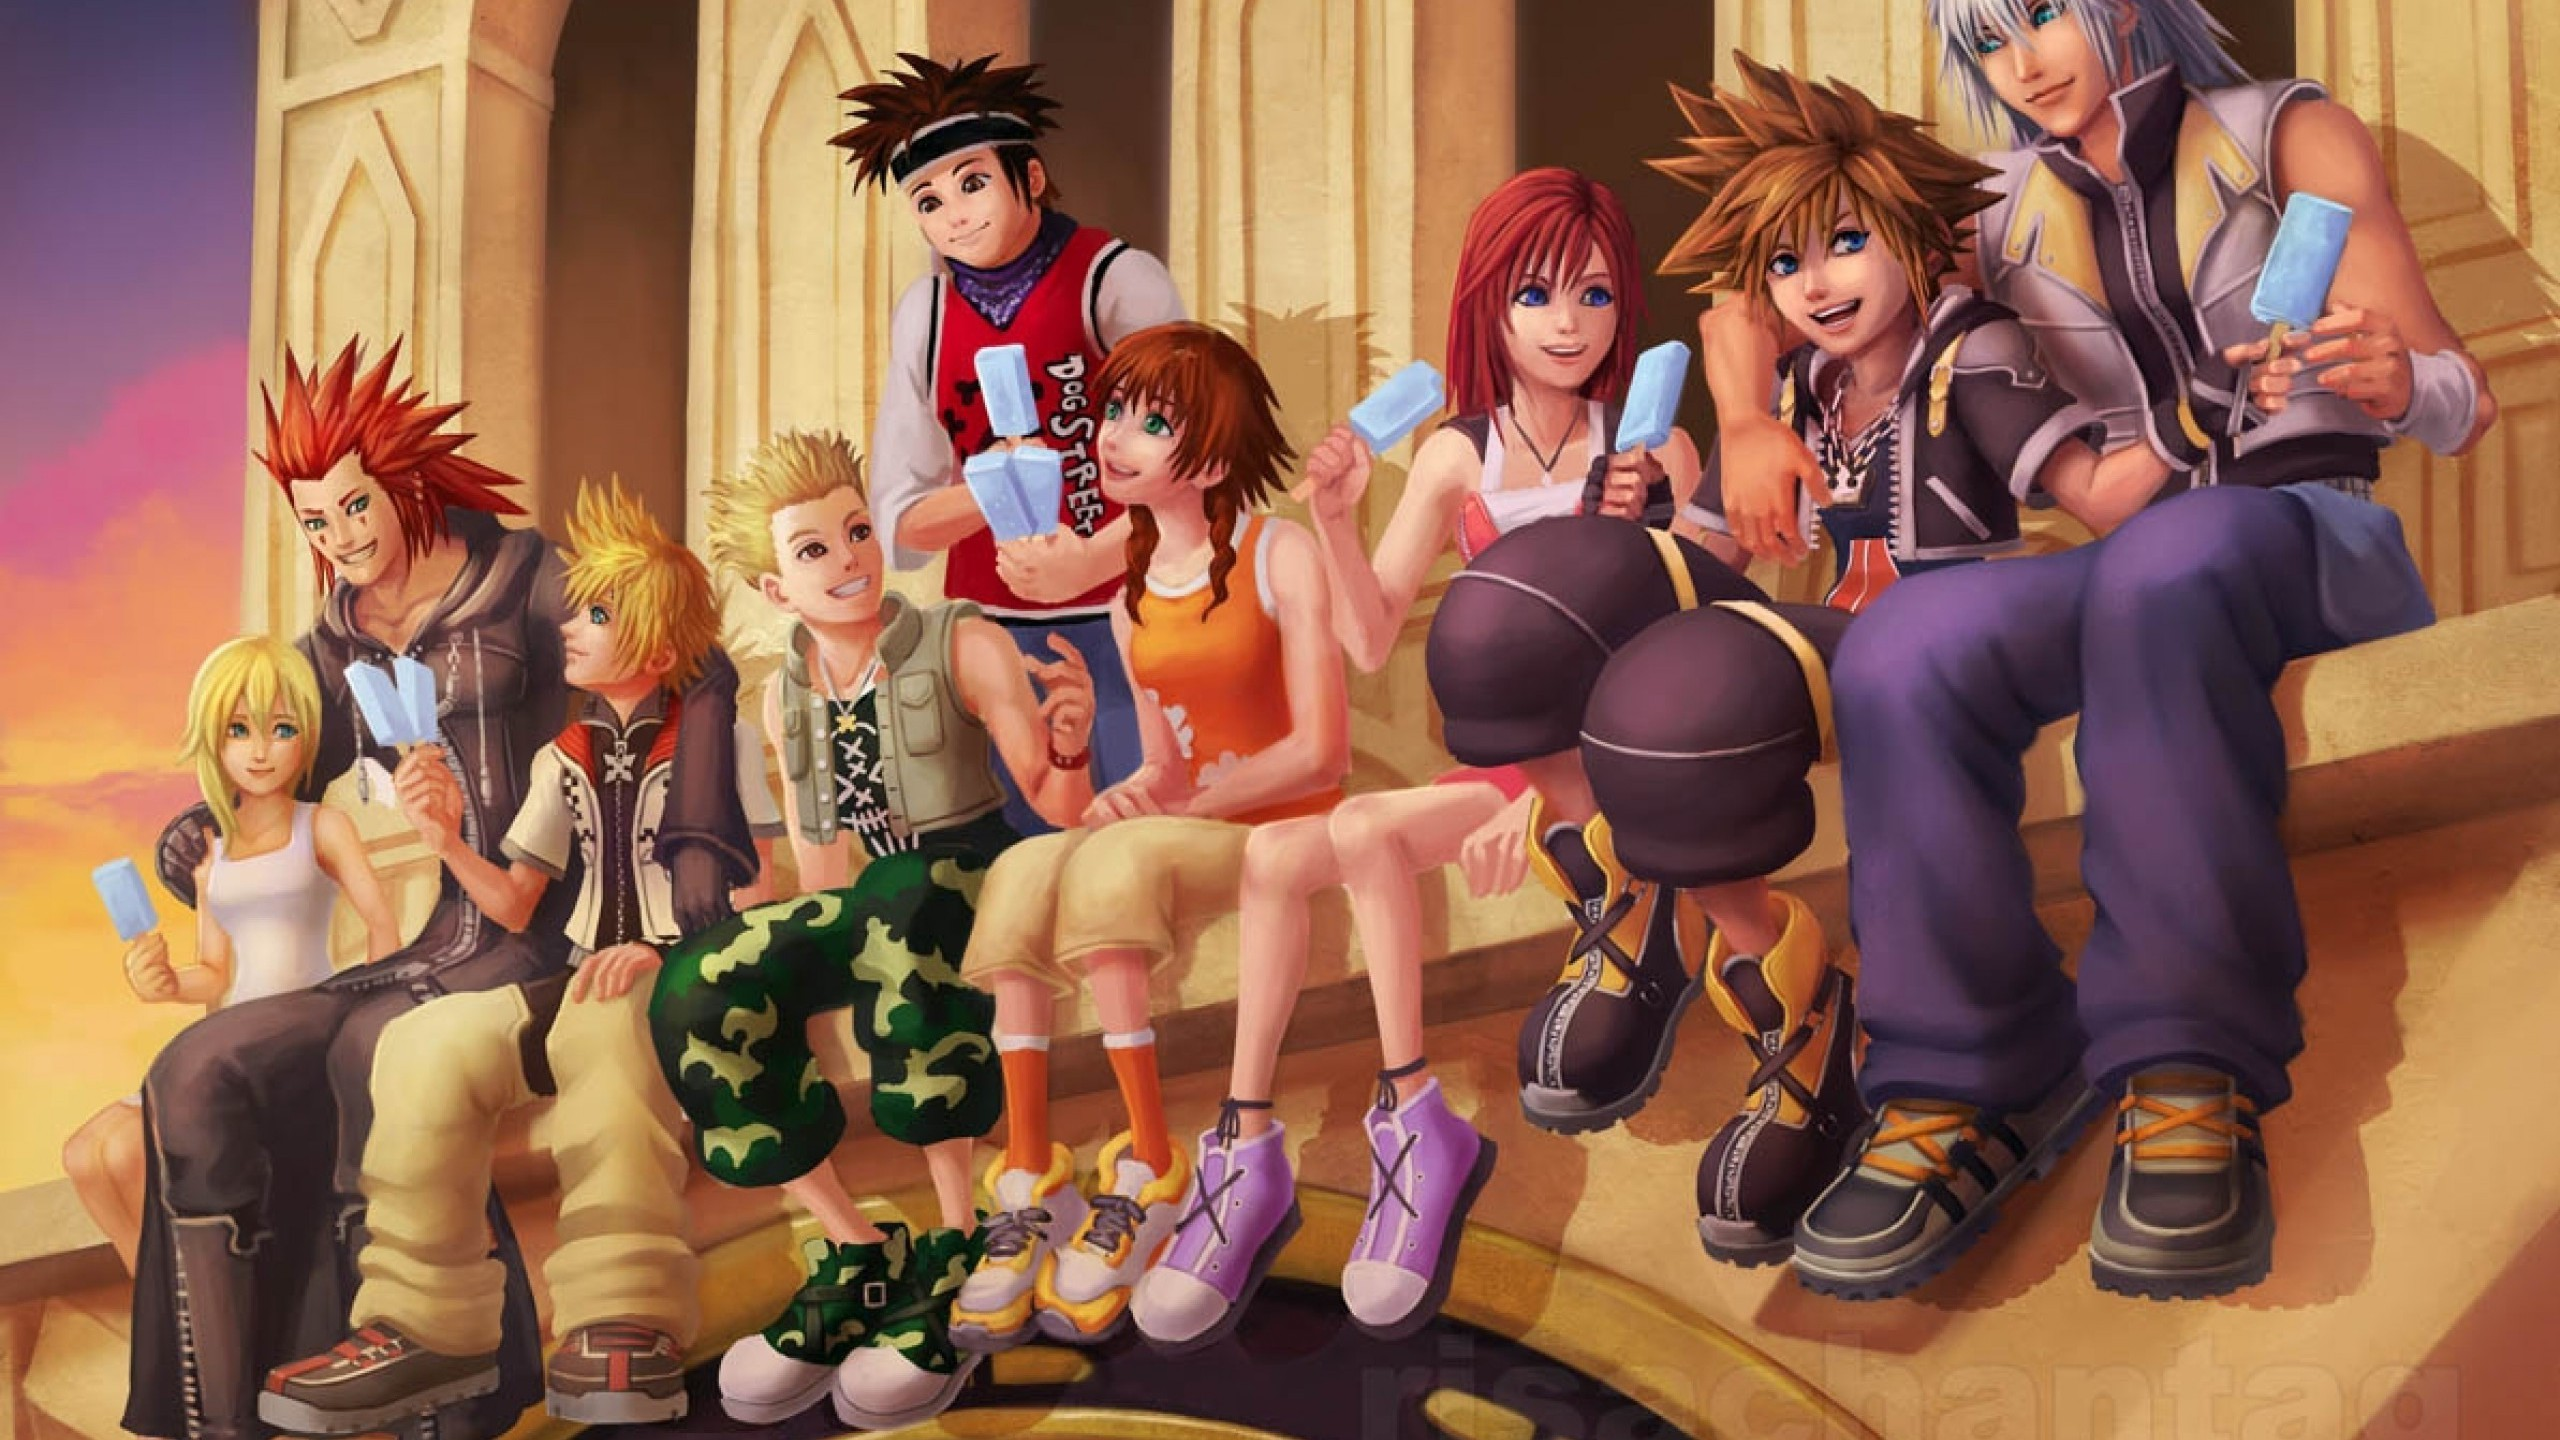 Res: 2560x1440, Kingdom hearts sora kairi lollipops namine olette 1193x840 wallpaper